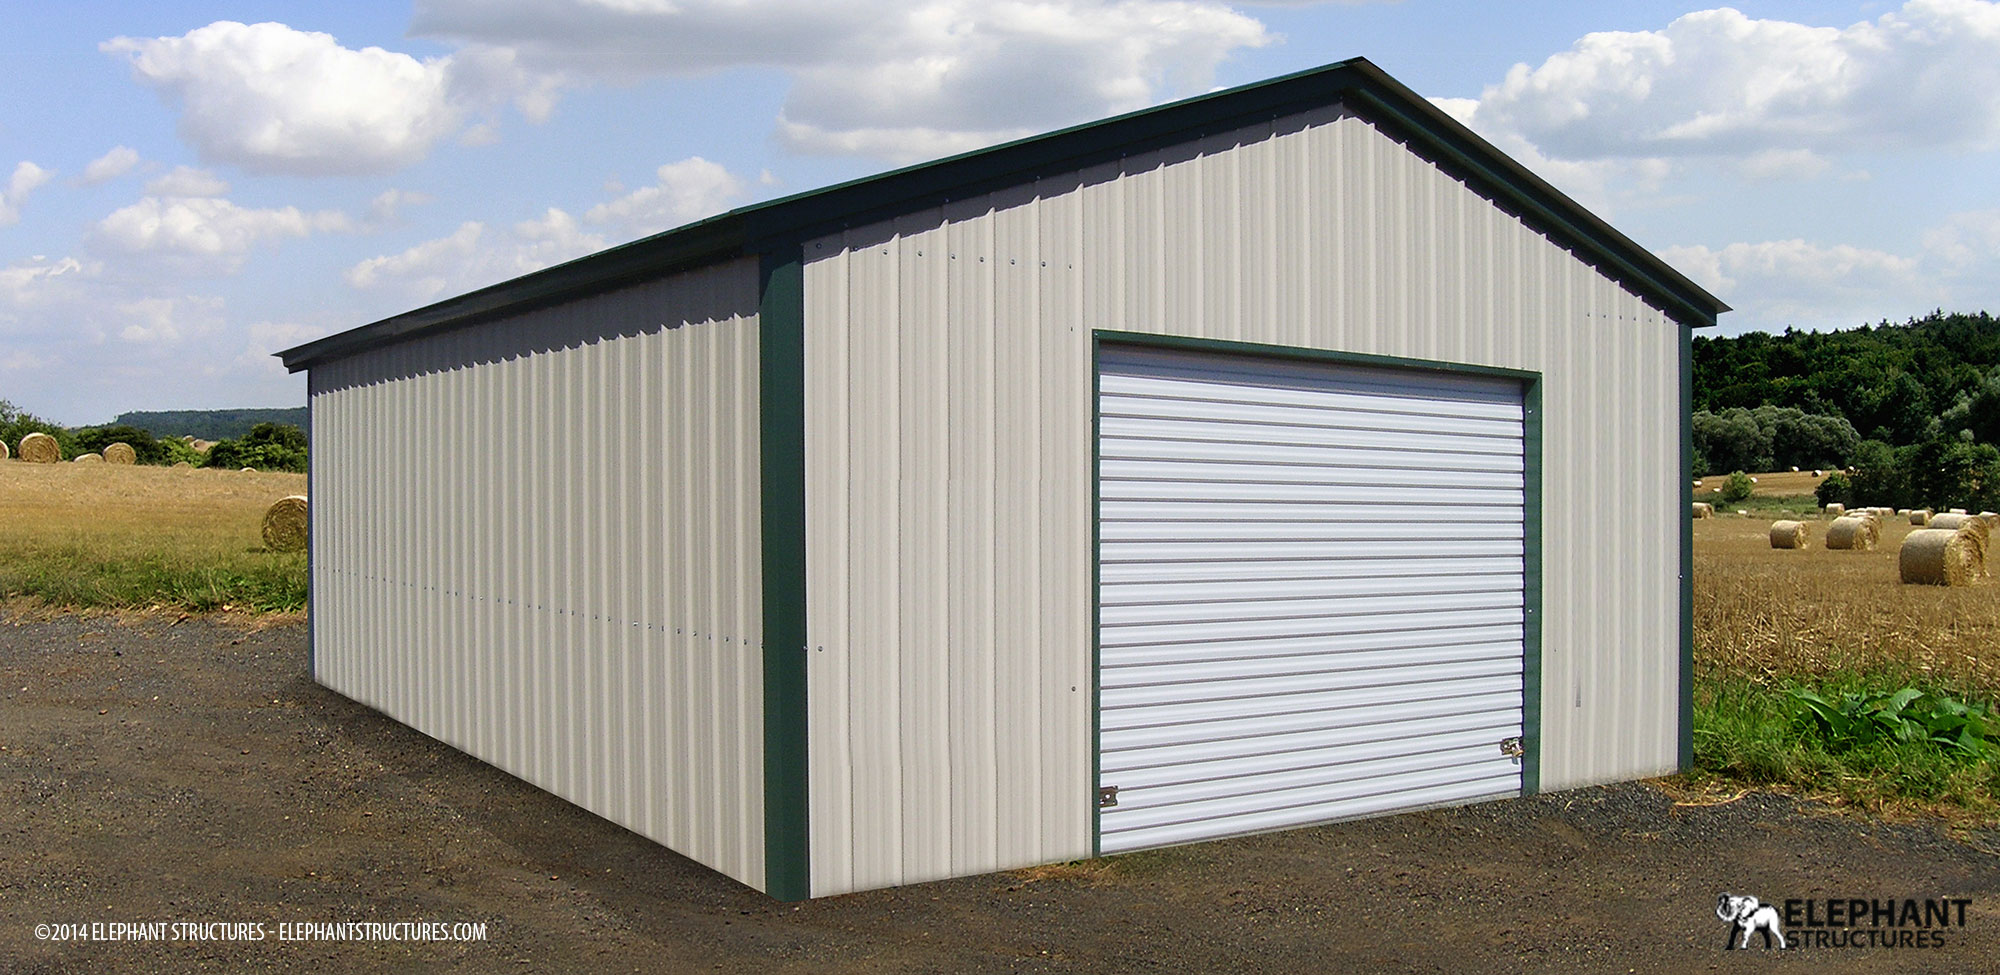 Metal buildings garages carports barns elephant structures 302 solutioingenieria Choice Image